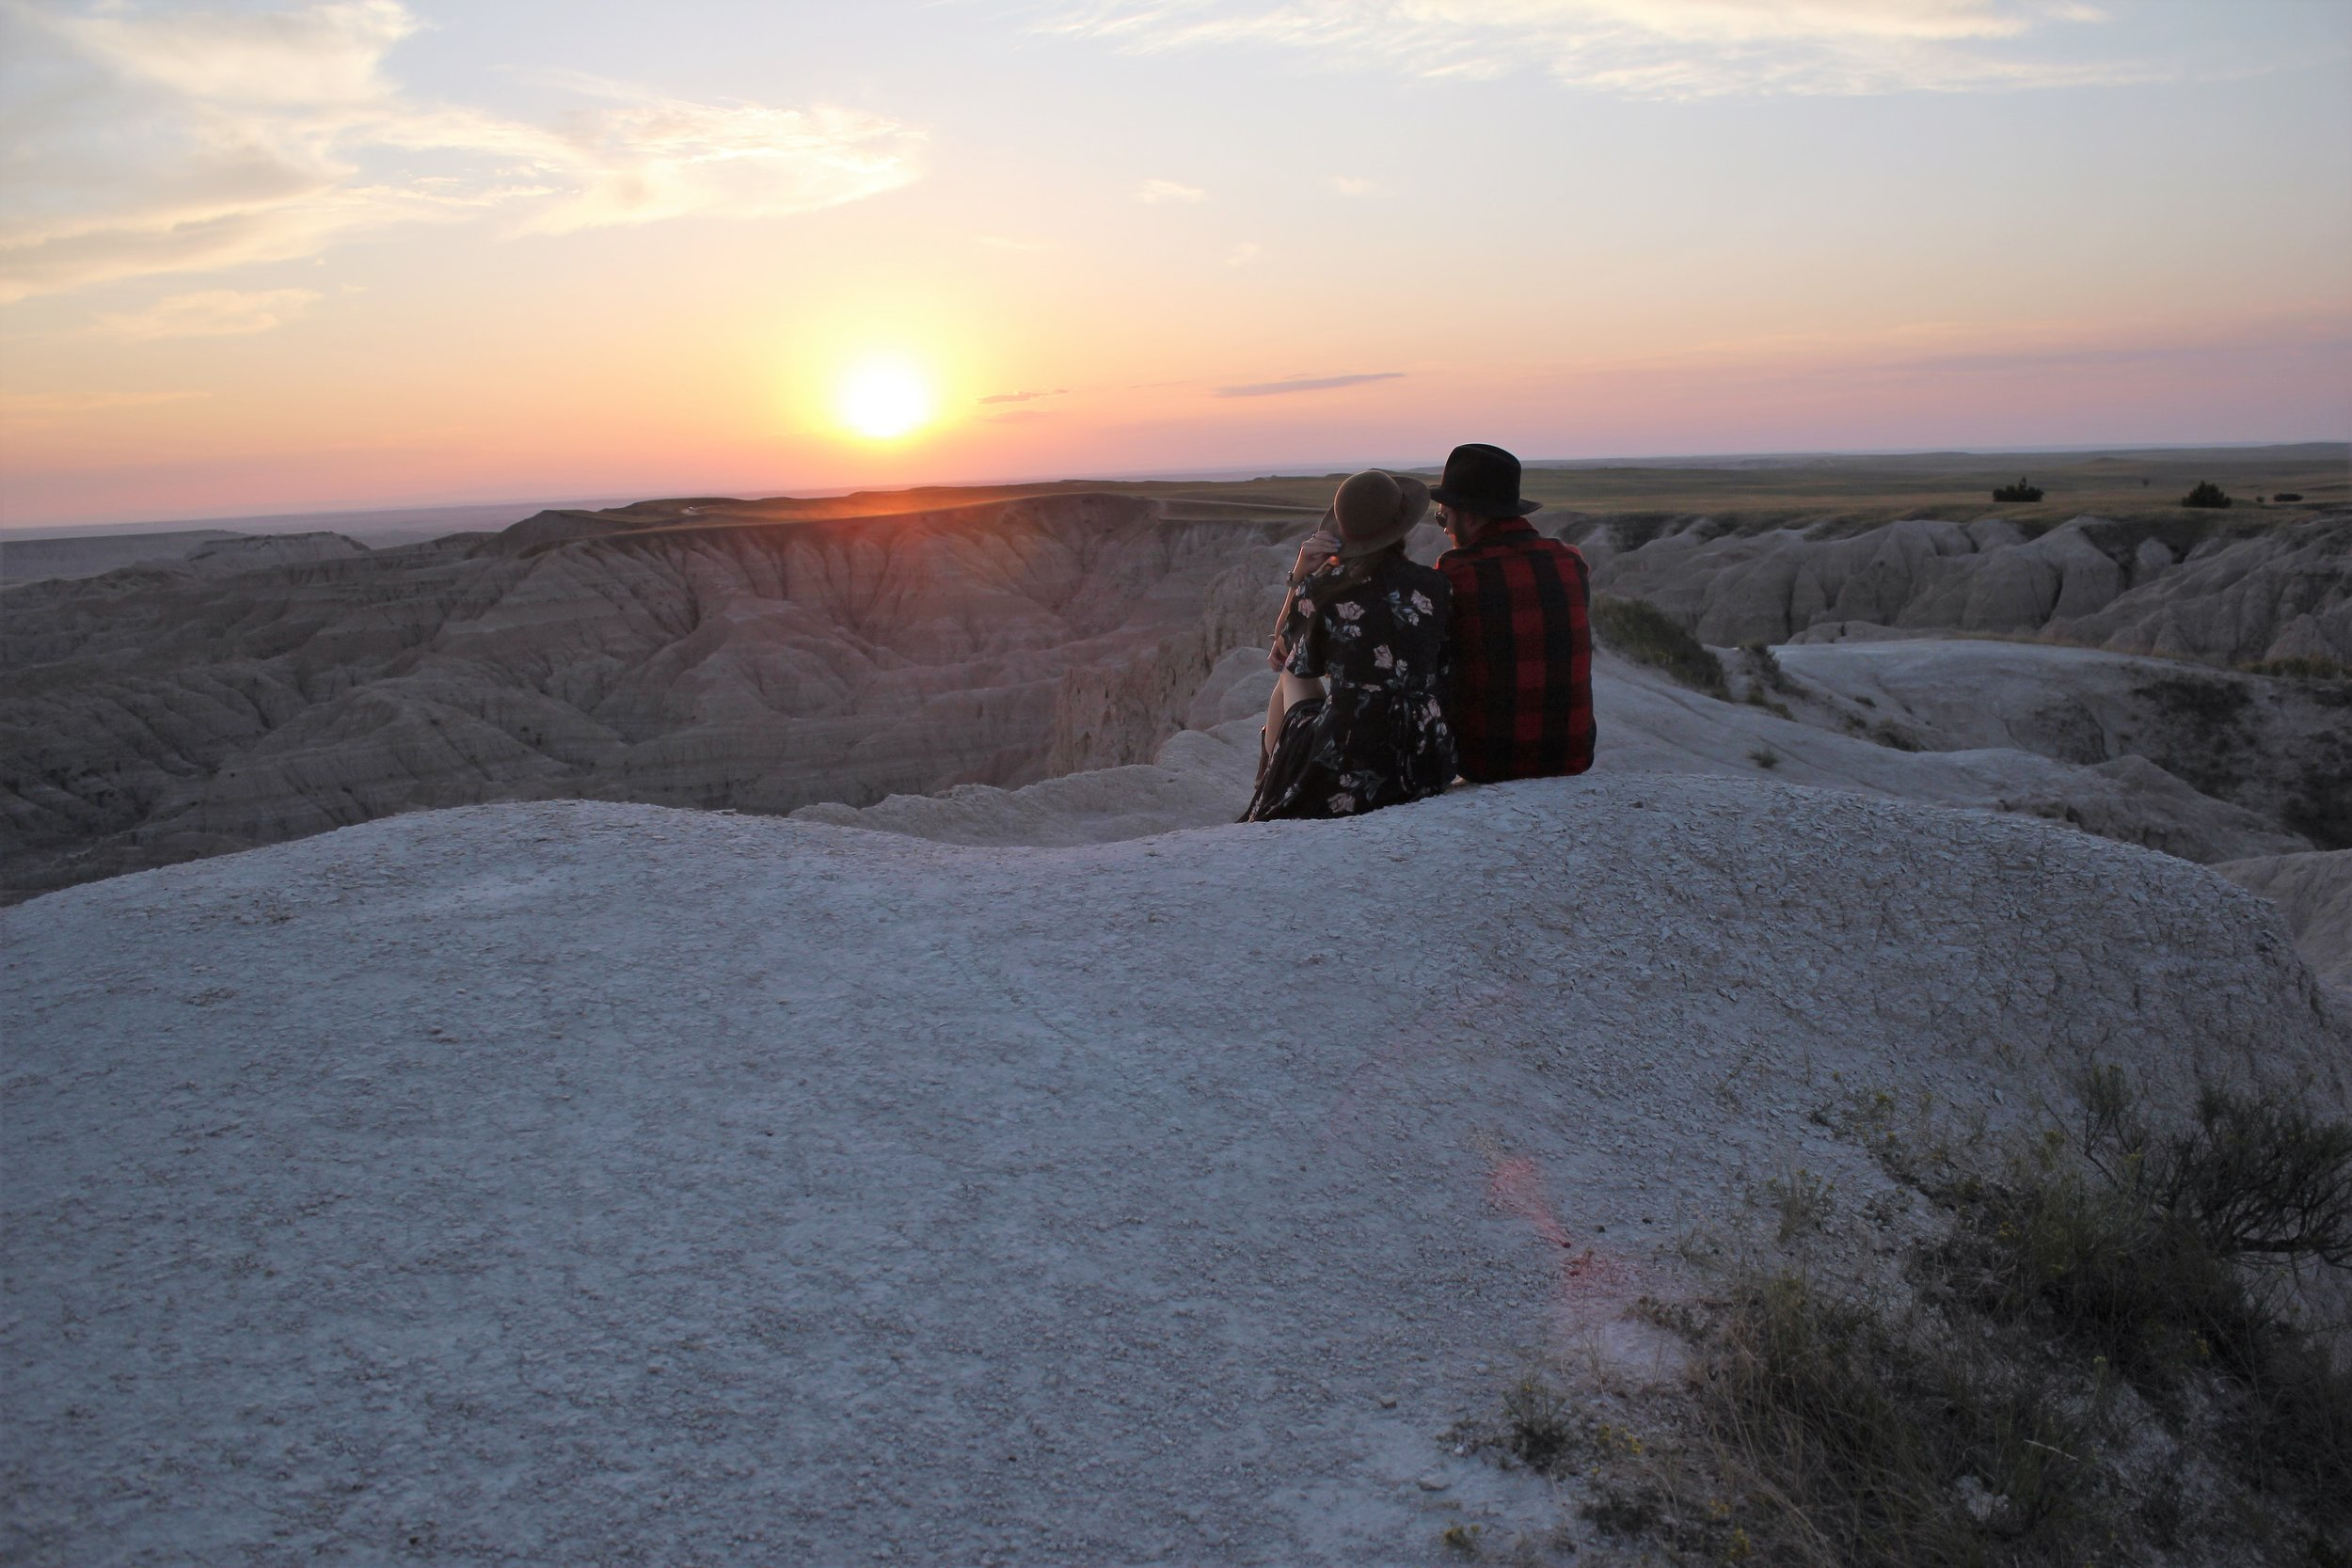 Cute Couple Sunset in the Badlands